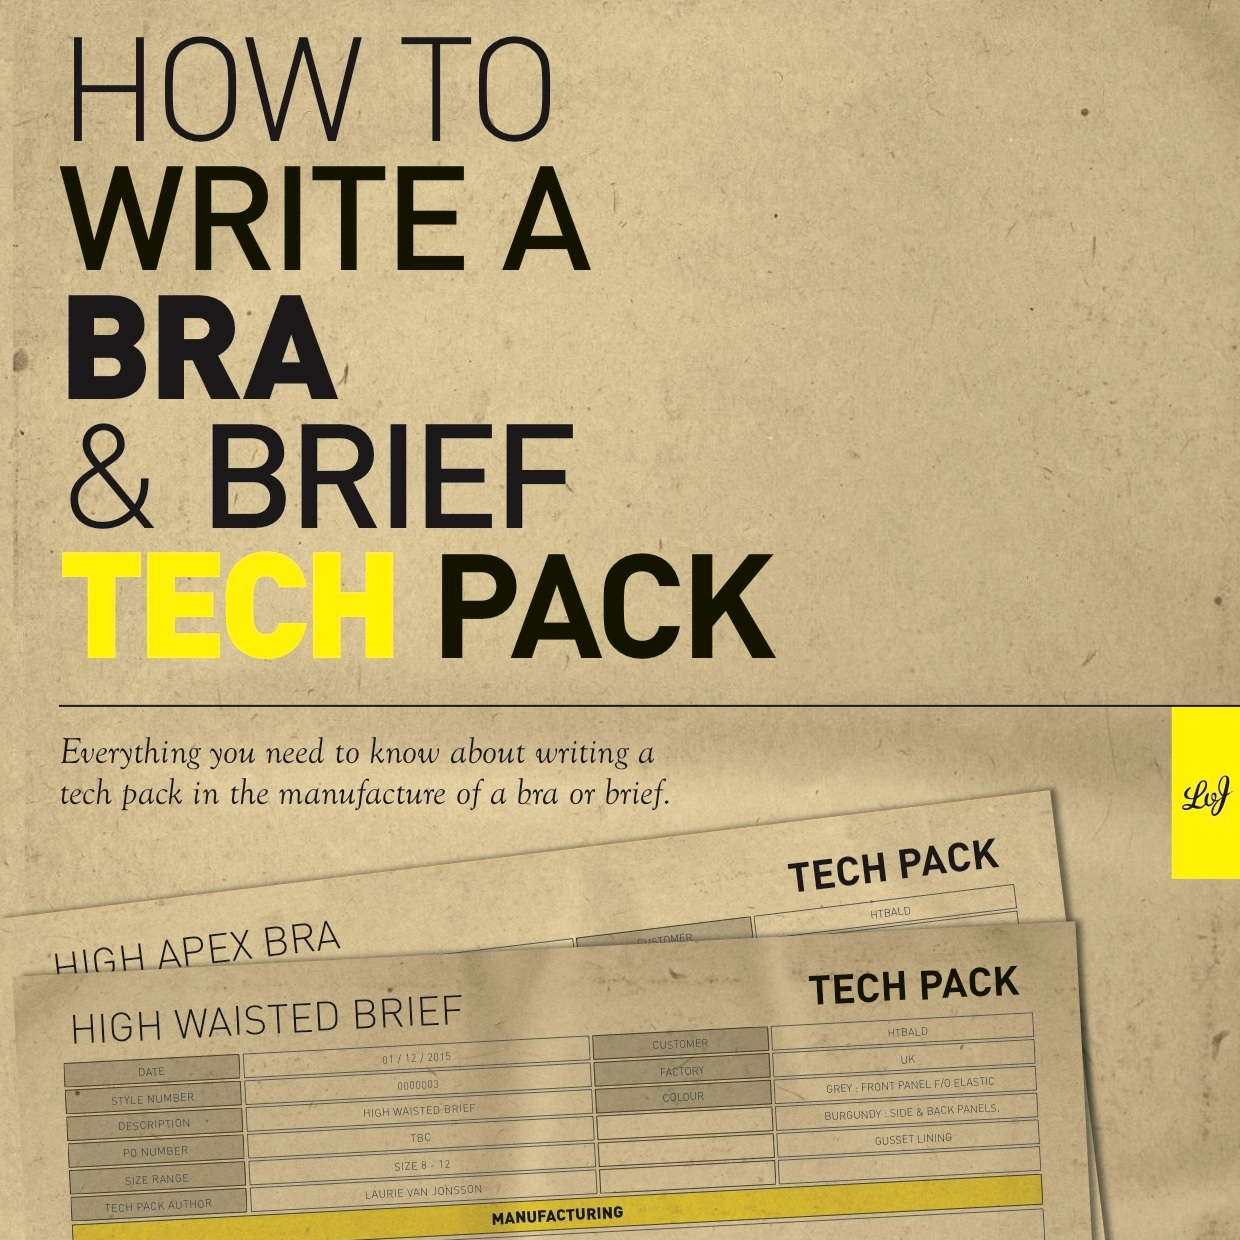 How to write a bra and brief tech pack